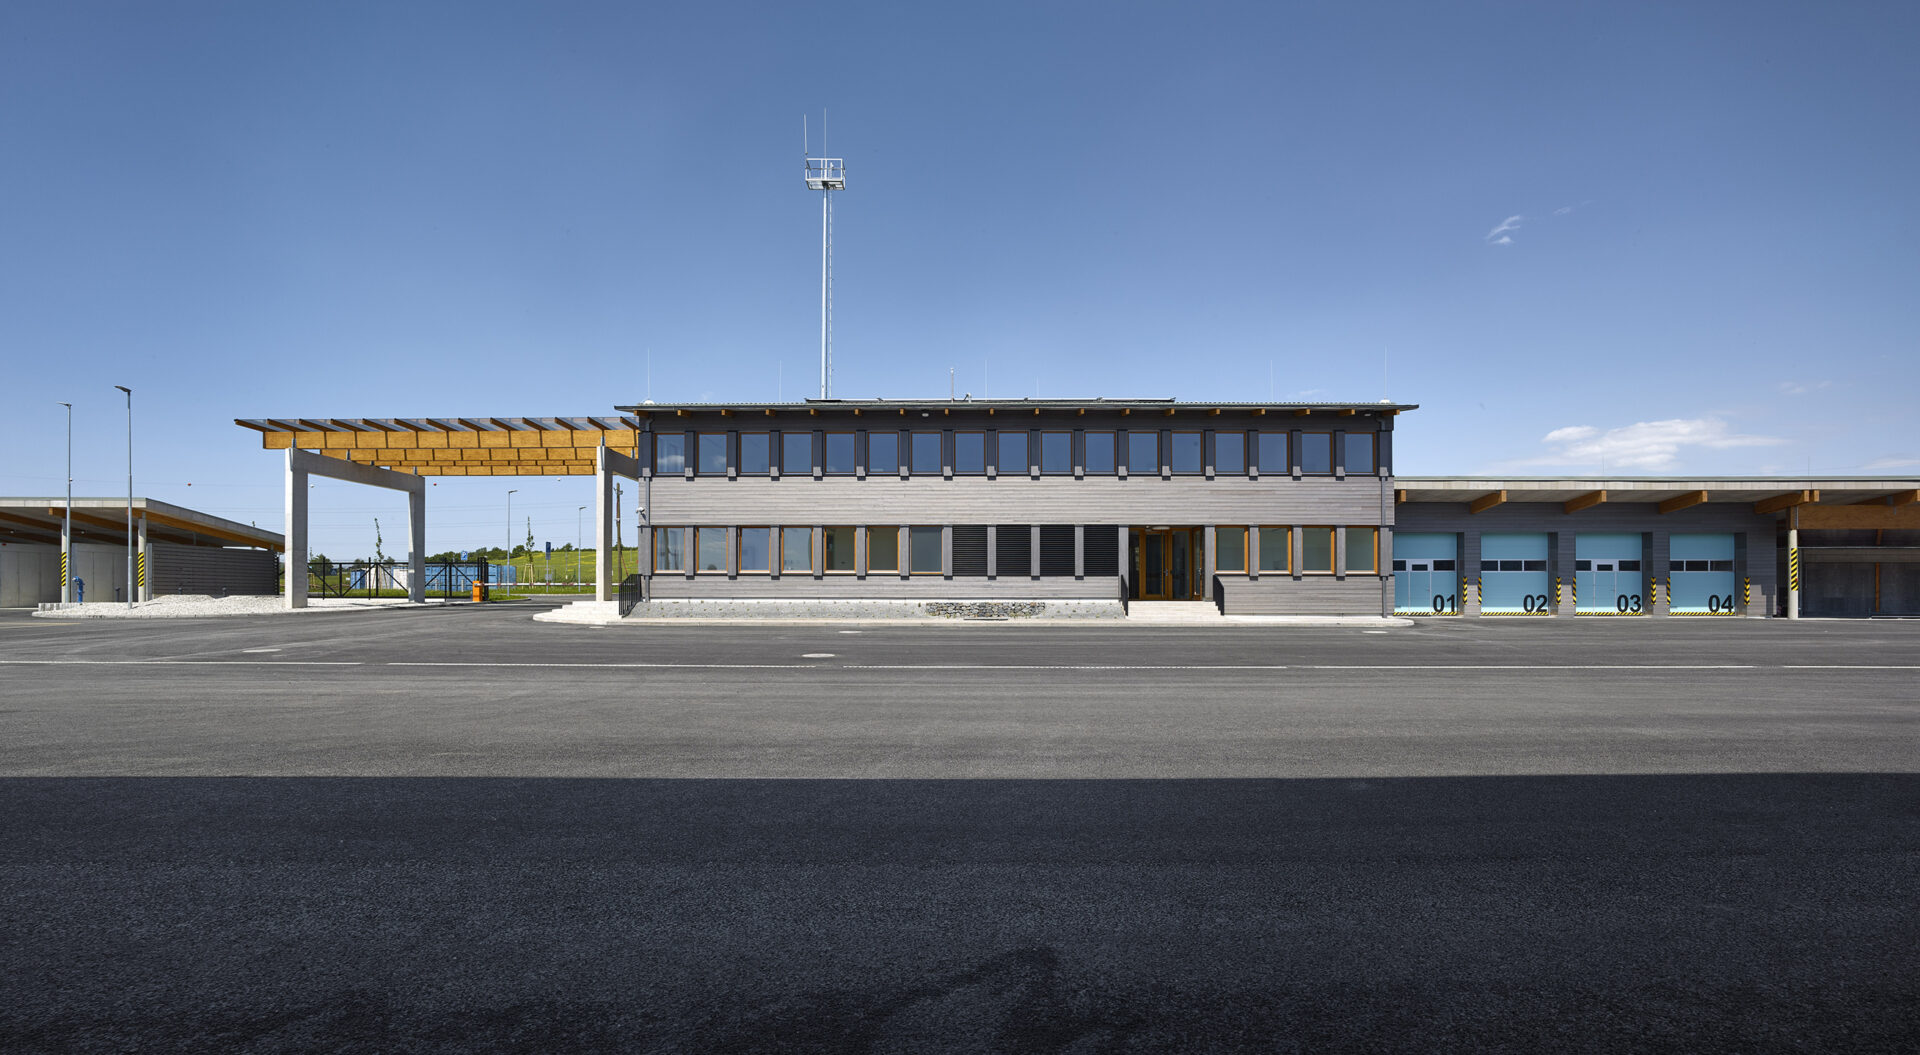 Centre for Administration and Maintenance of Motorway, Přerov